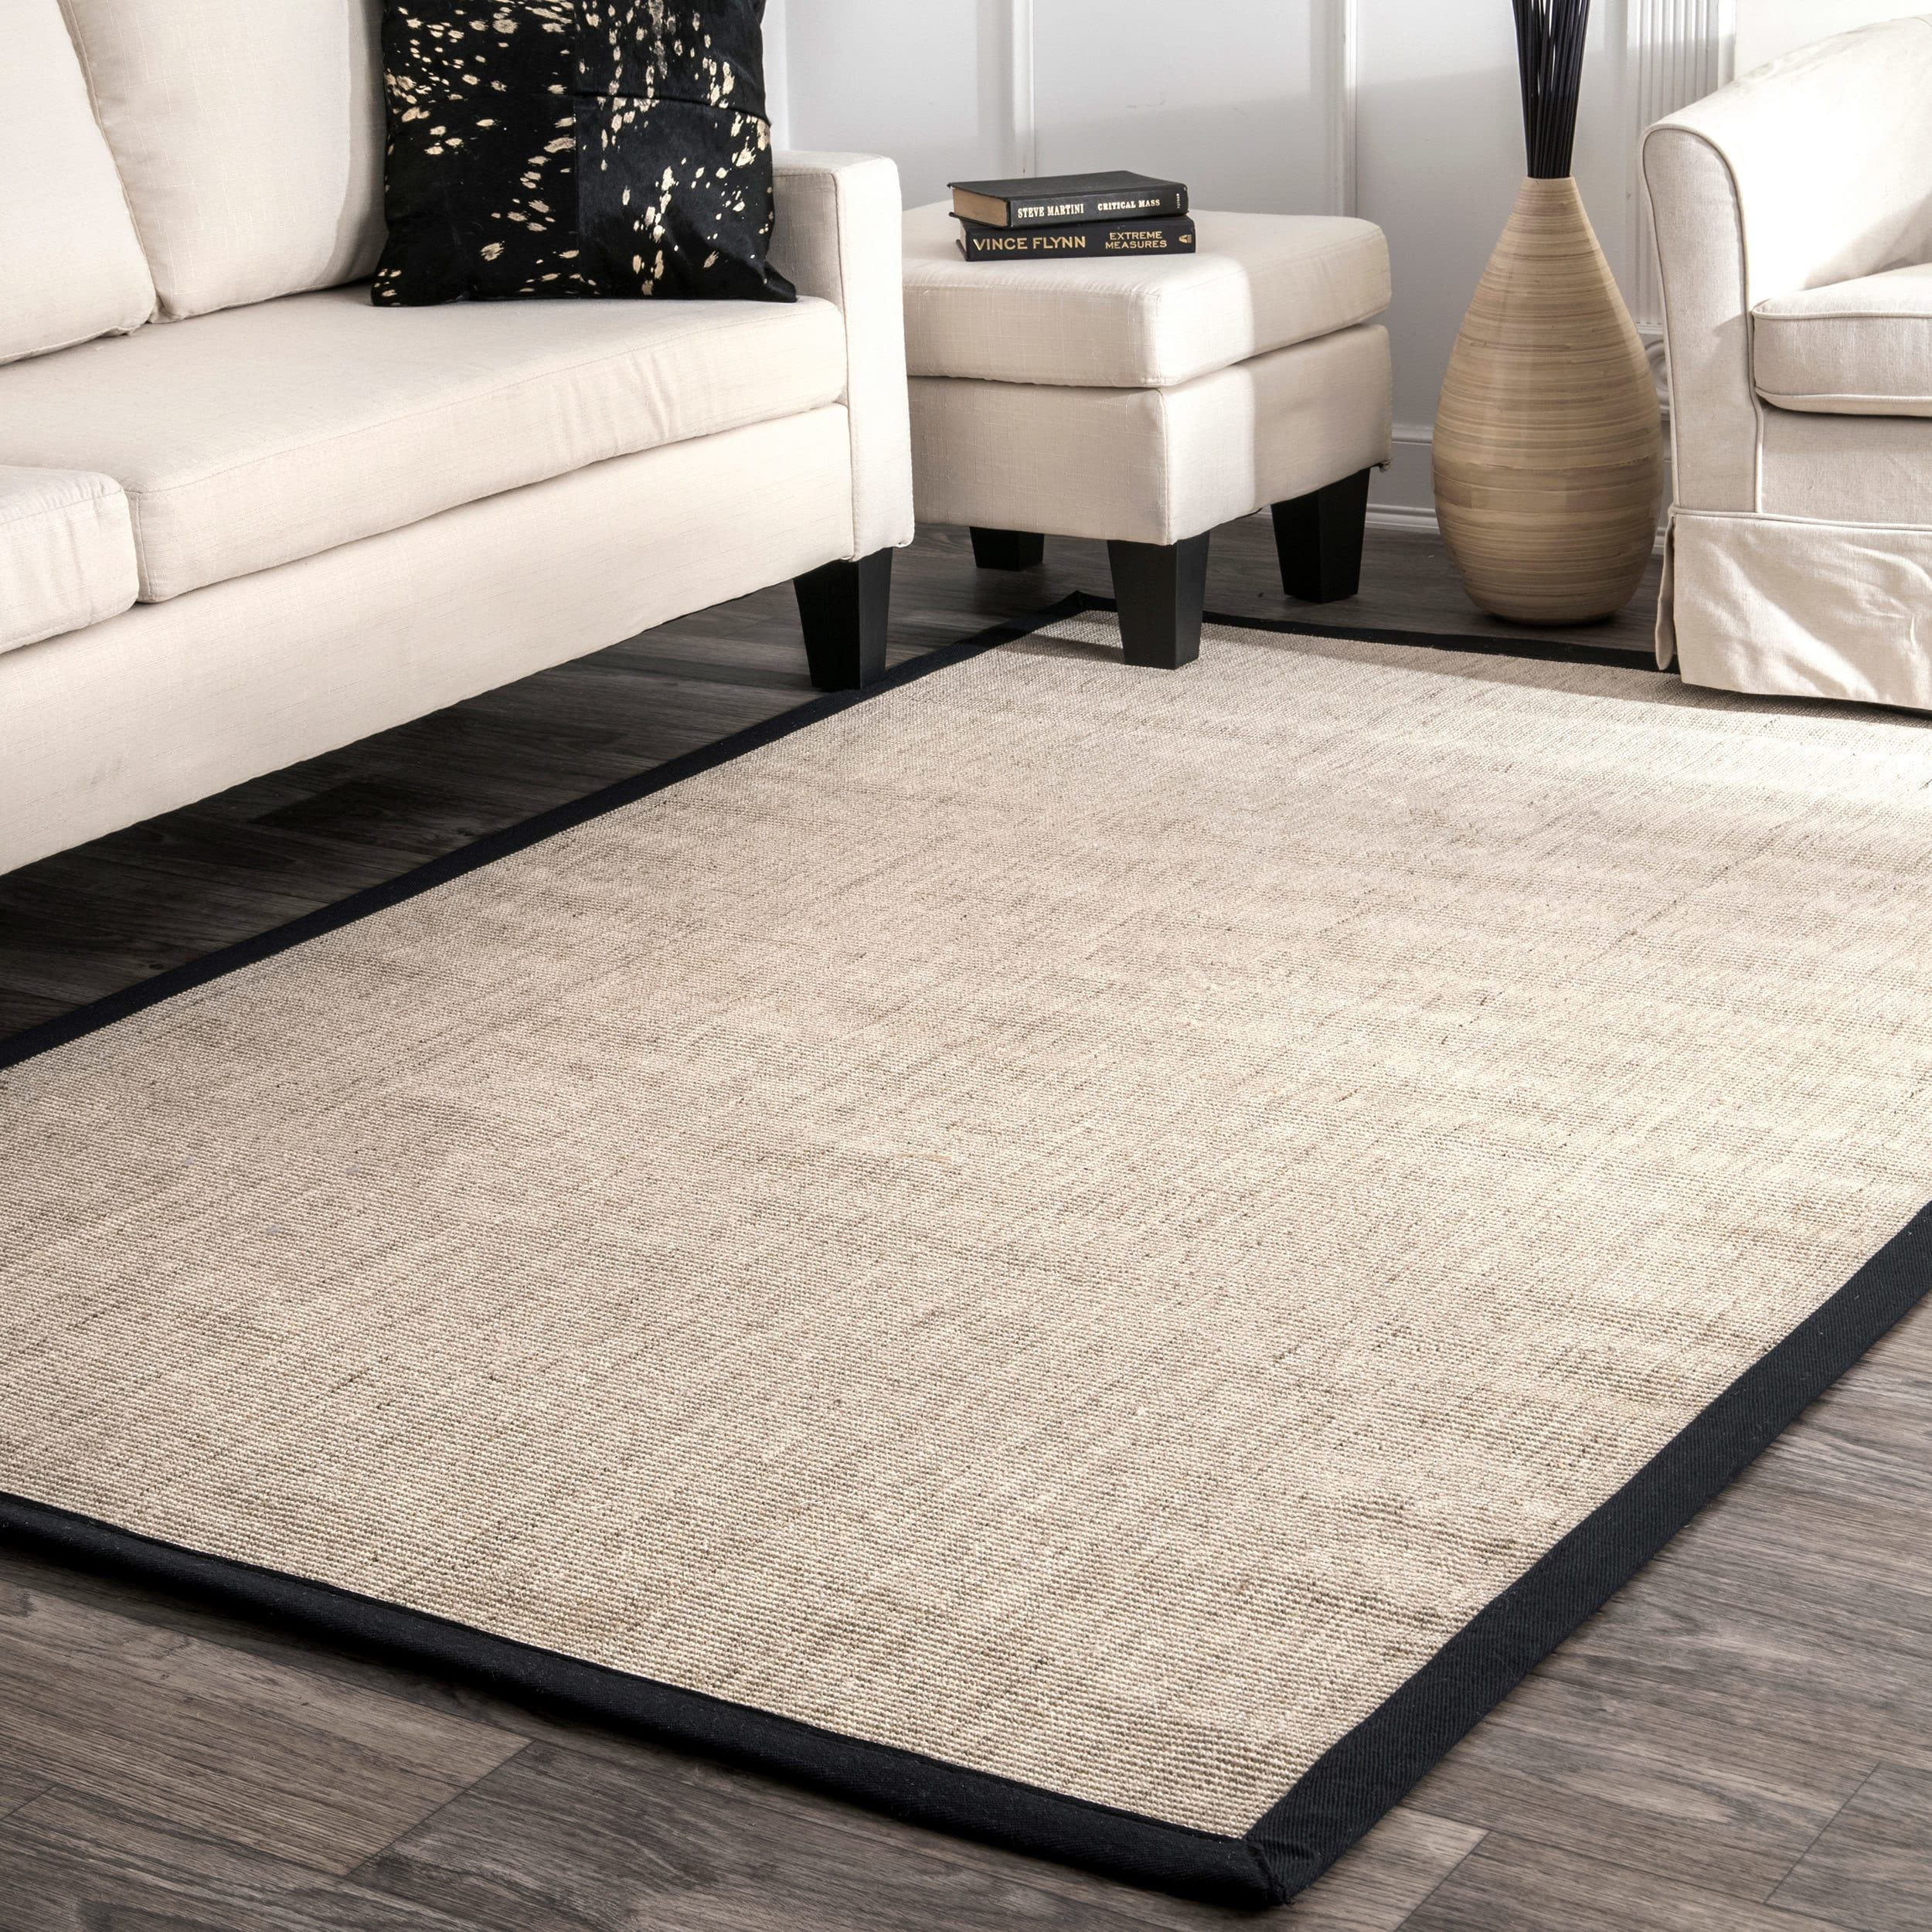 Nuloom Causal Alexa Eco Natural Fiber Solid Black Border Sisal Area Rug 9 X 12 Size